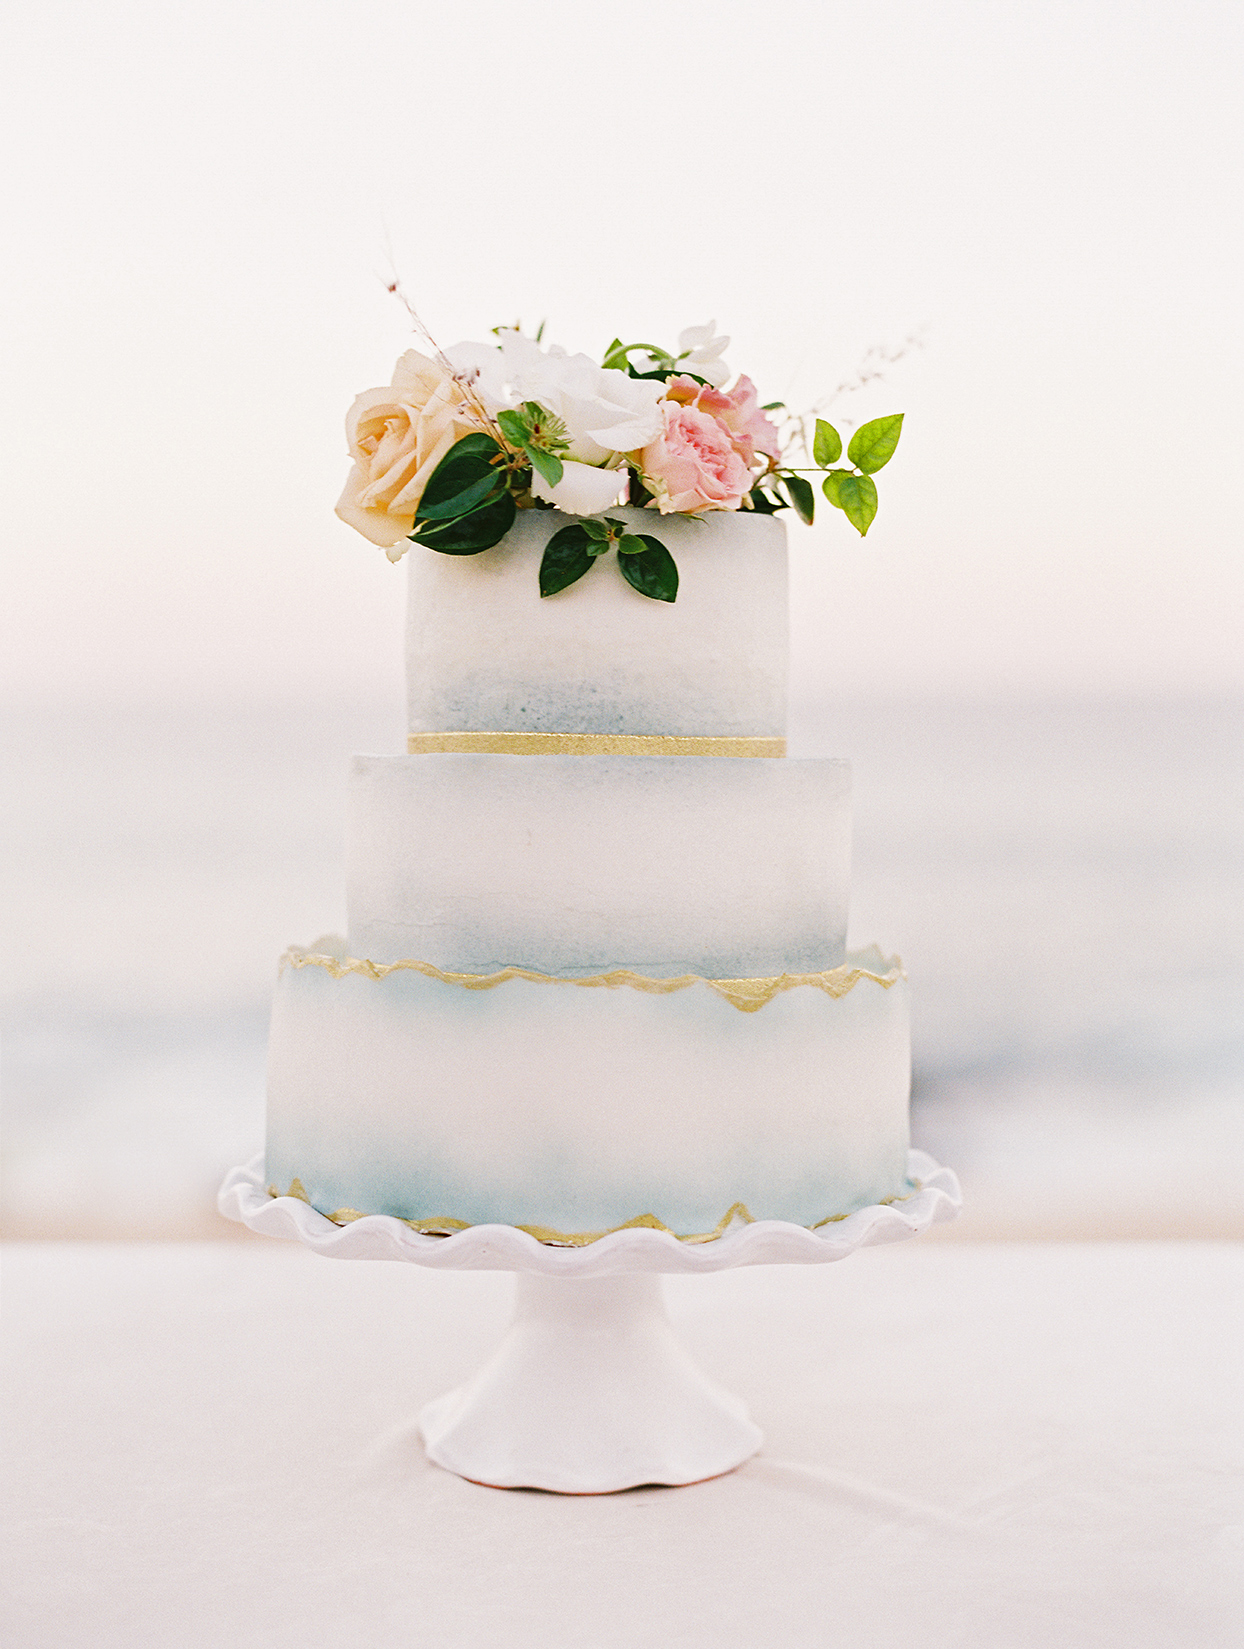 kirsten deran white wedding cake